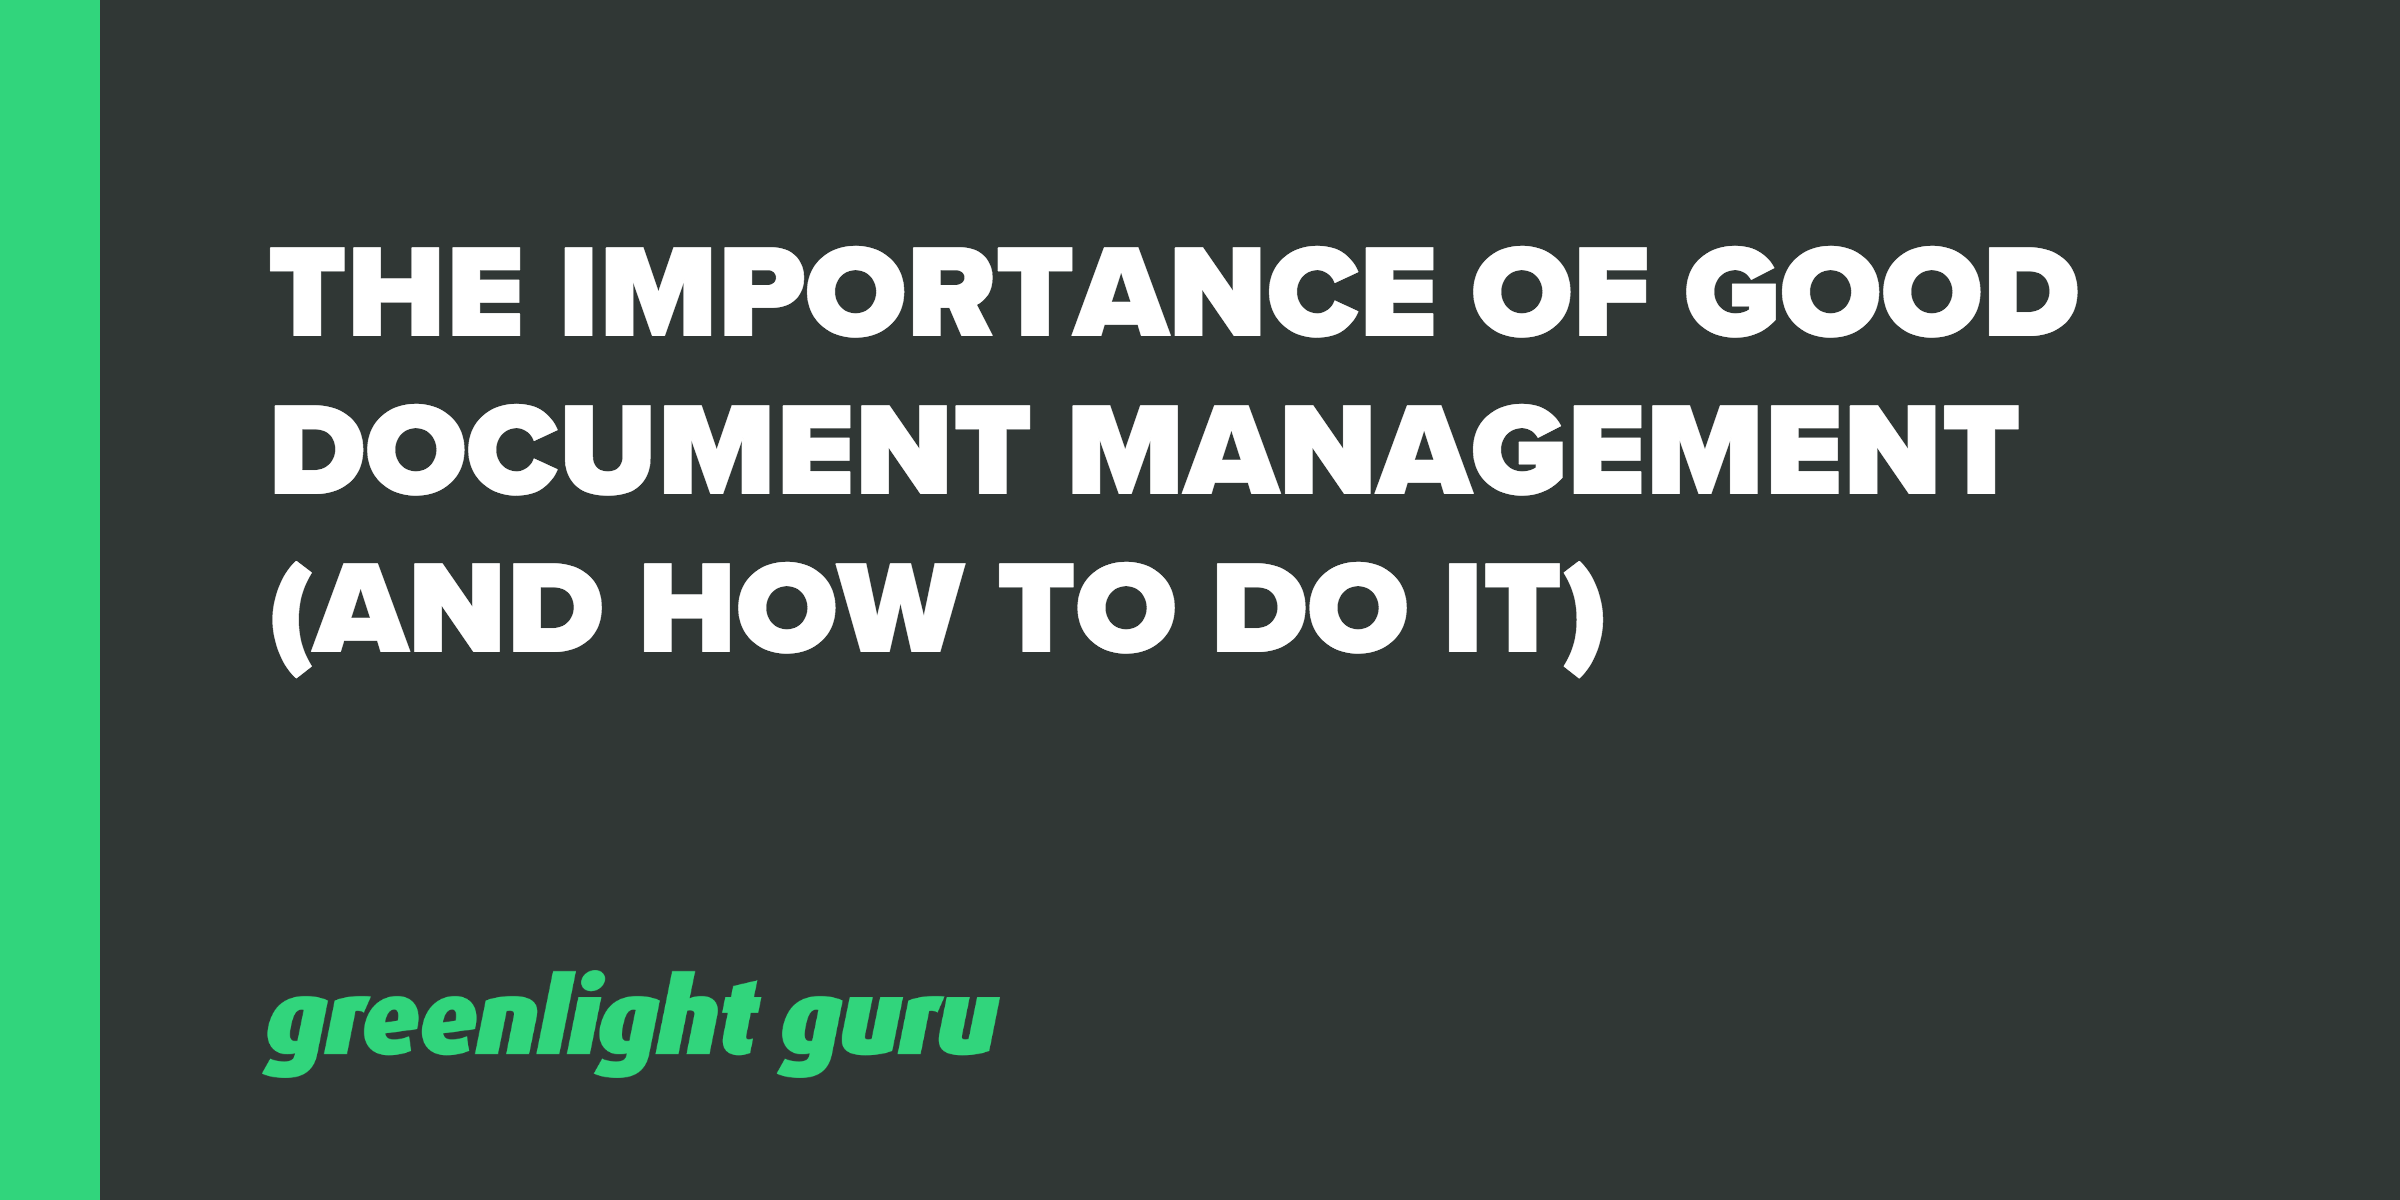 The Importance of Good Document Management (And How To Do It) - Featured Image